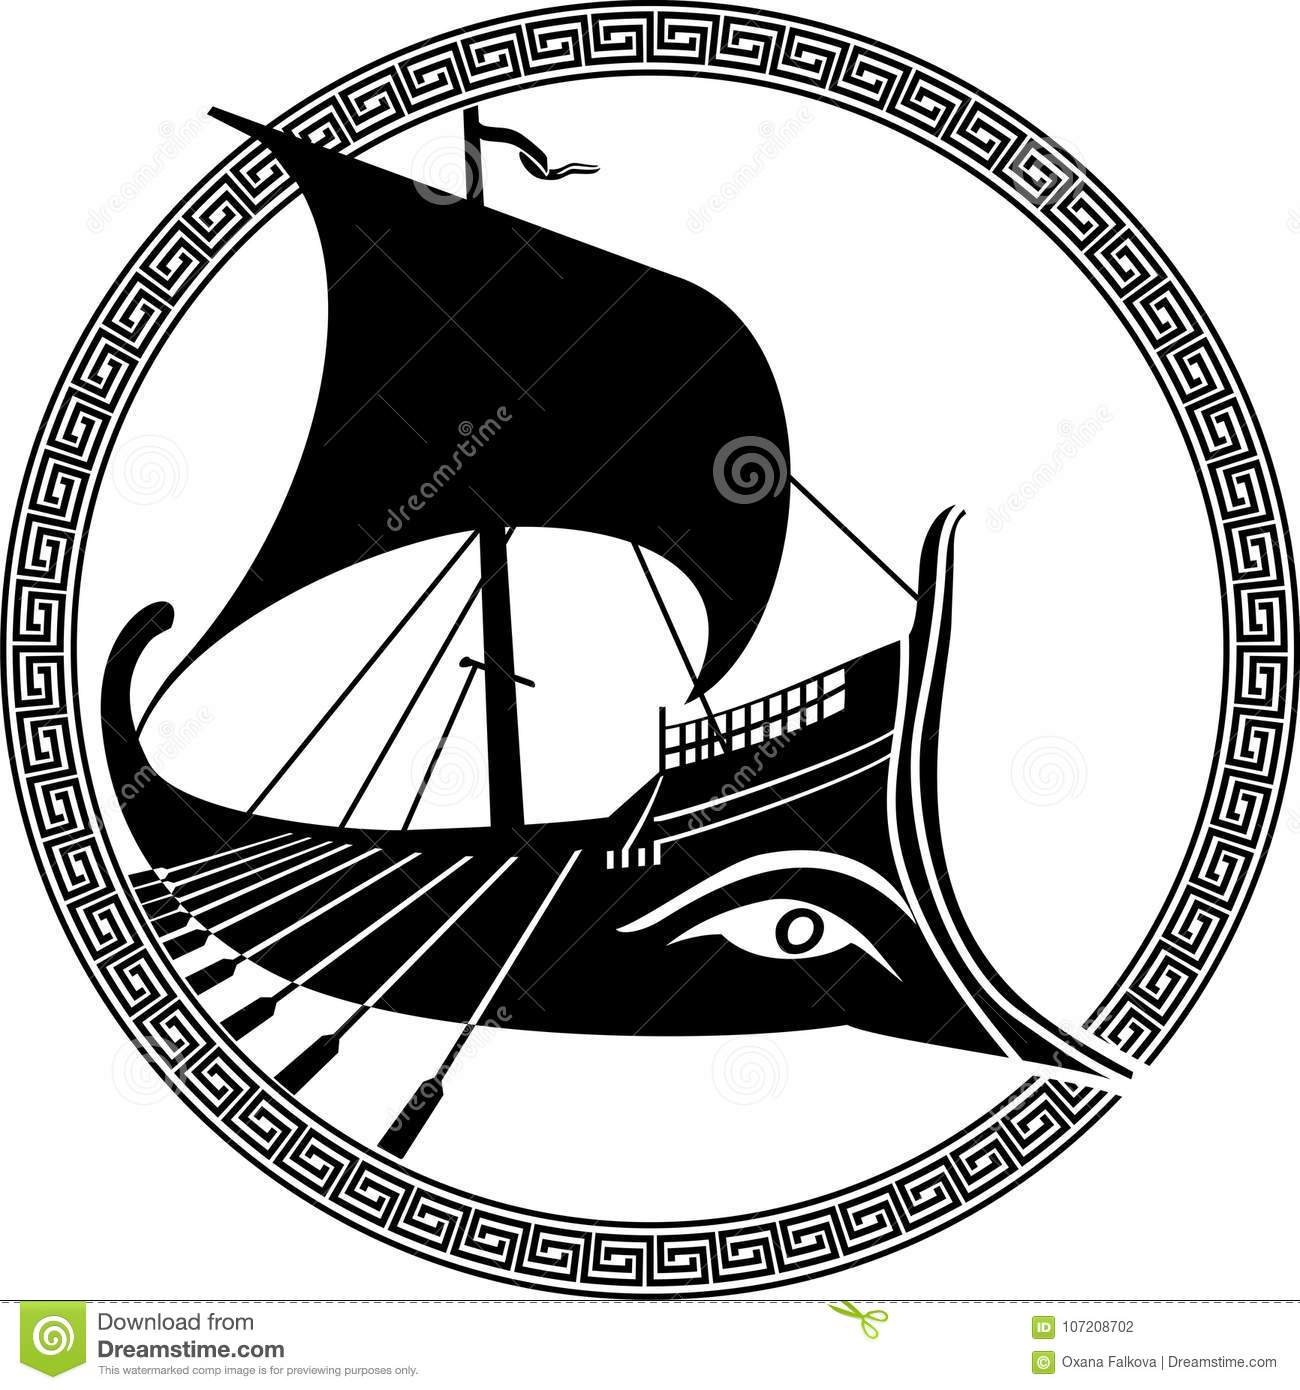 hight resolution of vector illustration of a logo design of an ancient greek ship